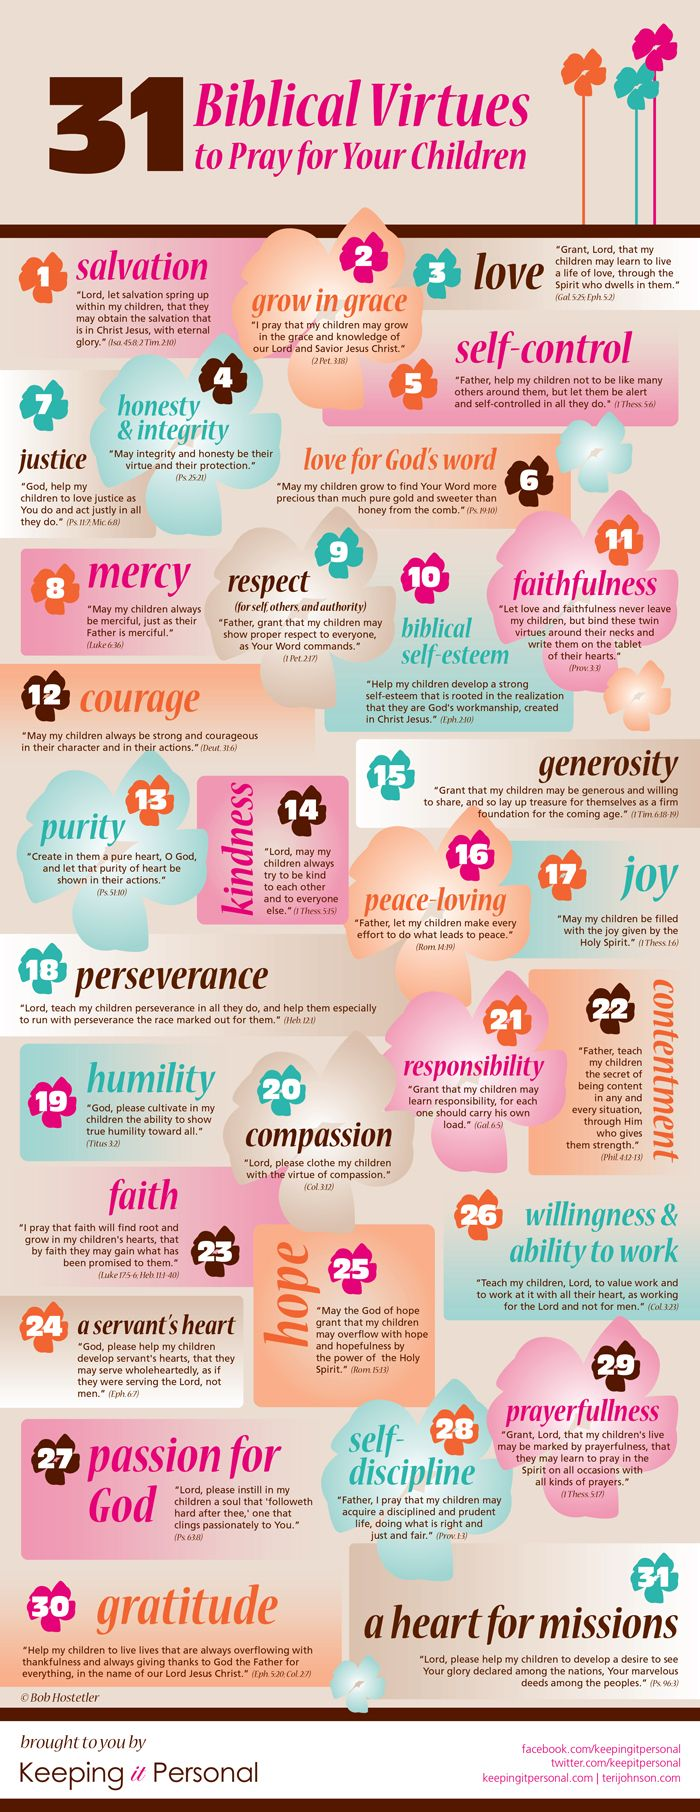 Biblical Virtues